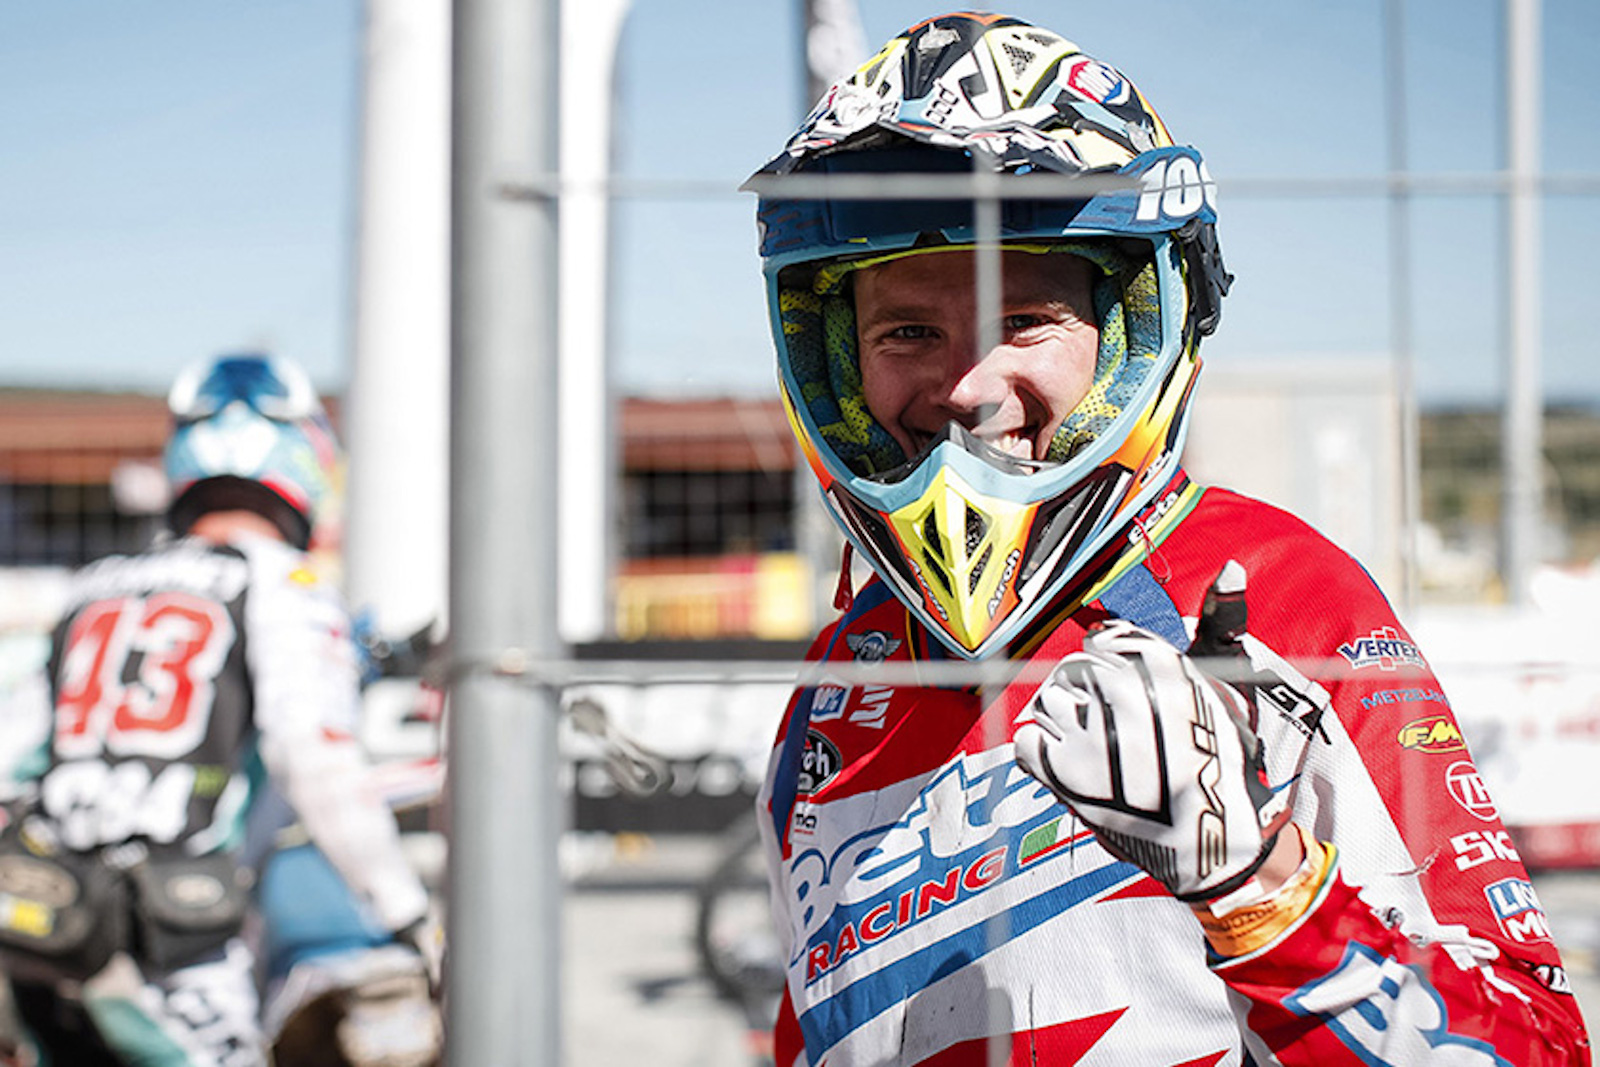 Holcombe fit and fired up for EnduroGP comeback at Czech GP this weekend